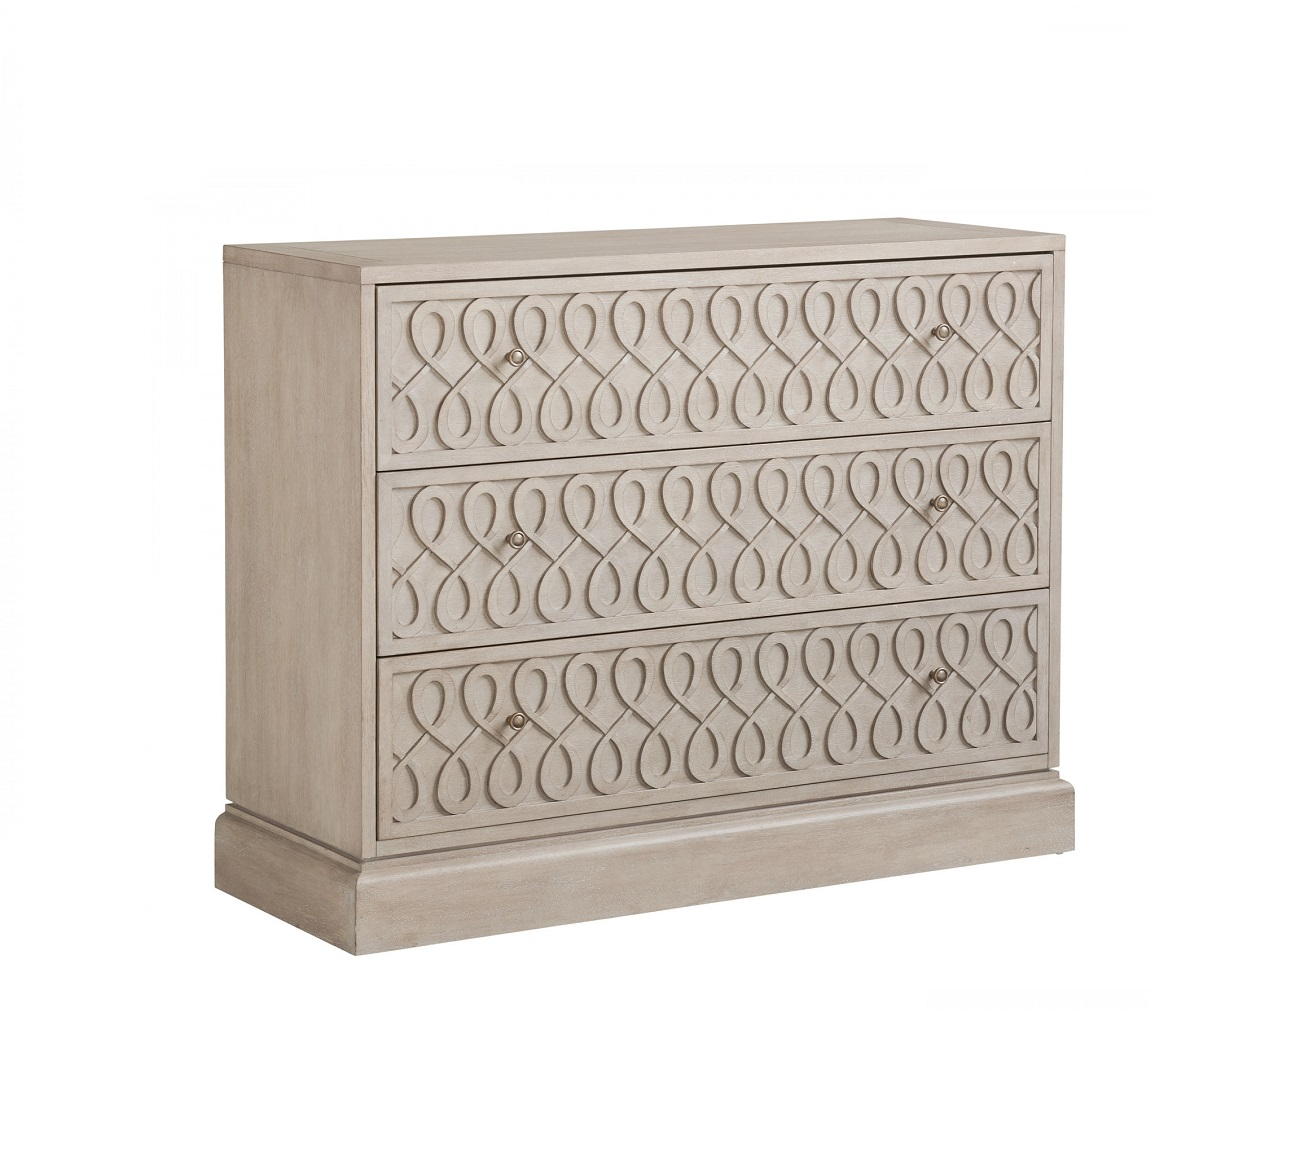 Adamson Hall Chest, Lexington Traditional Chest Of Drawers Furniture, Brooklyn, New York, Furniture By ABD